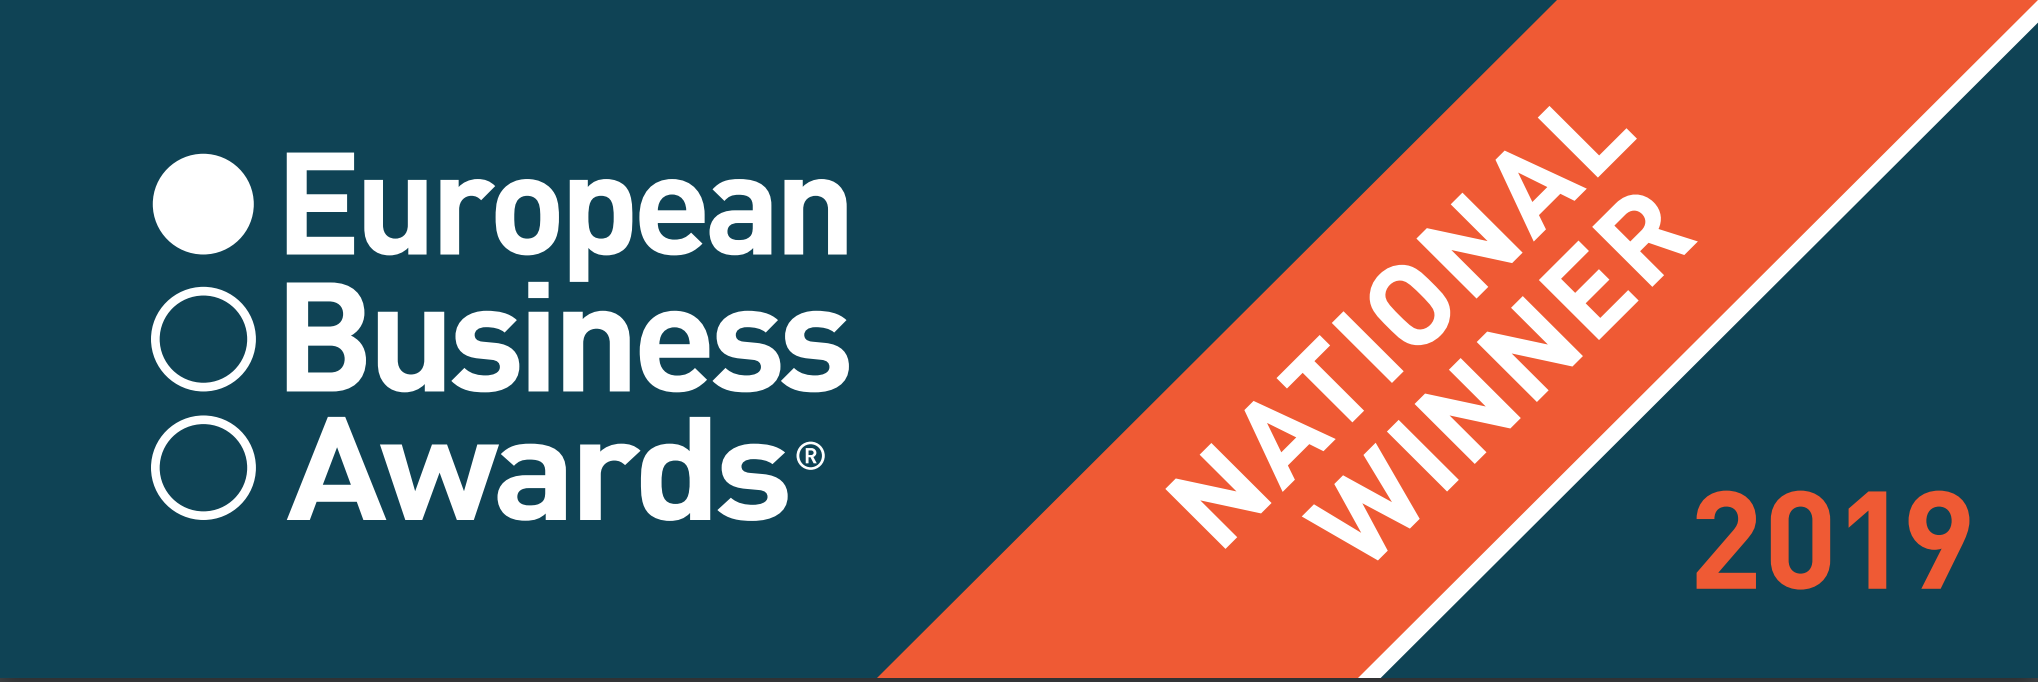 uxda-awarded-european-business-award